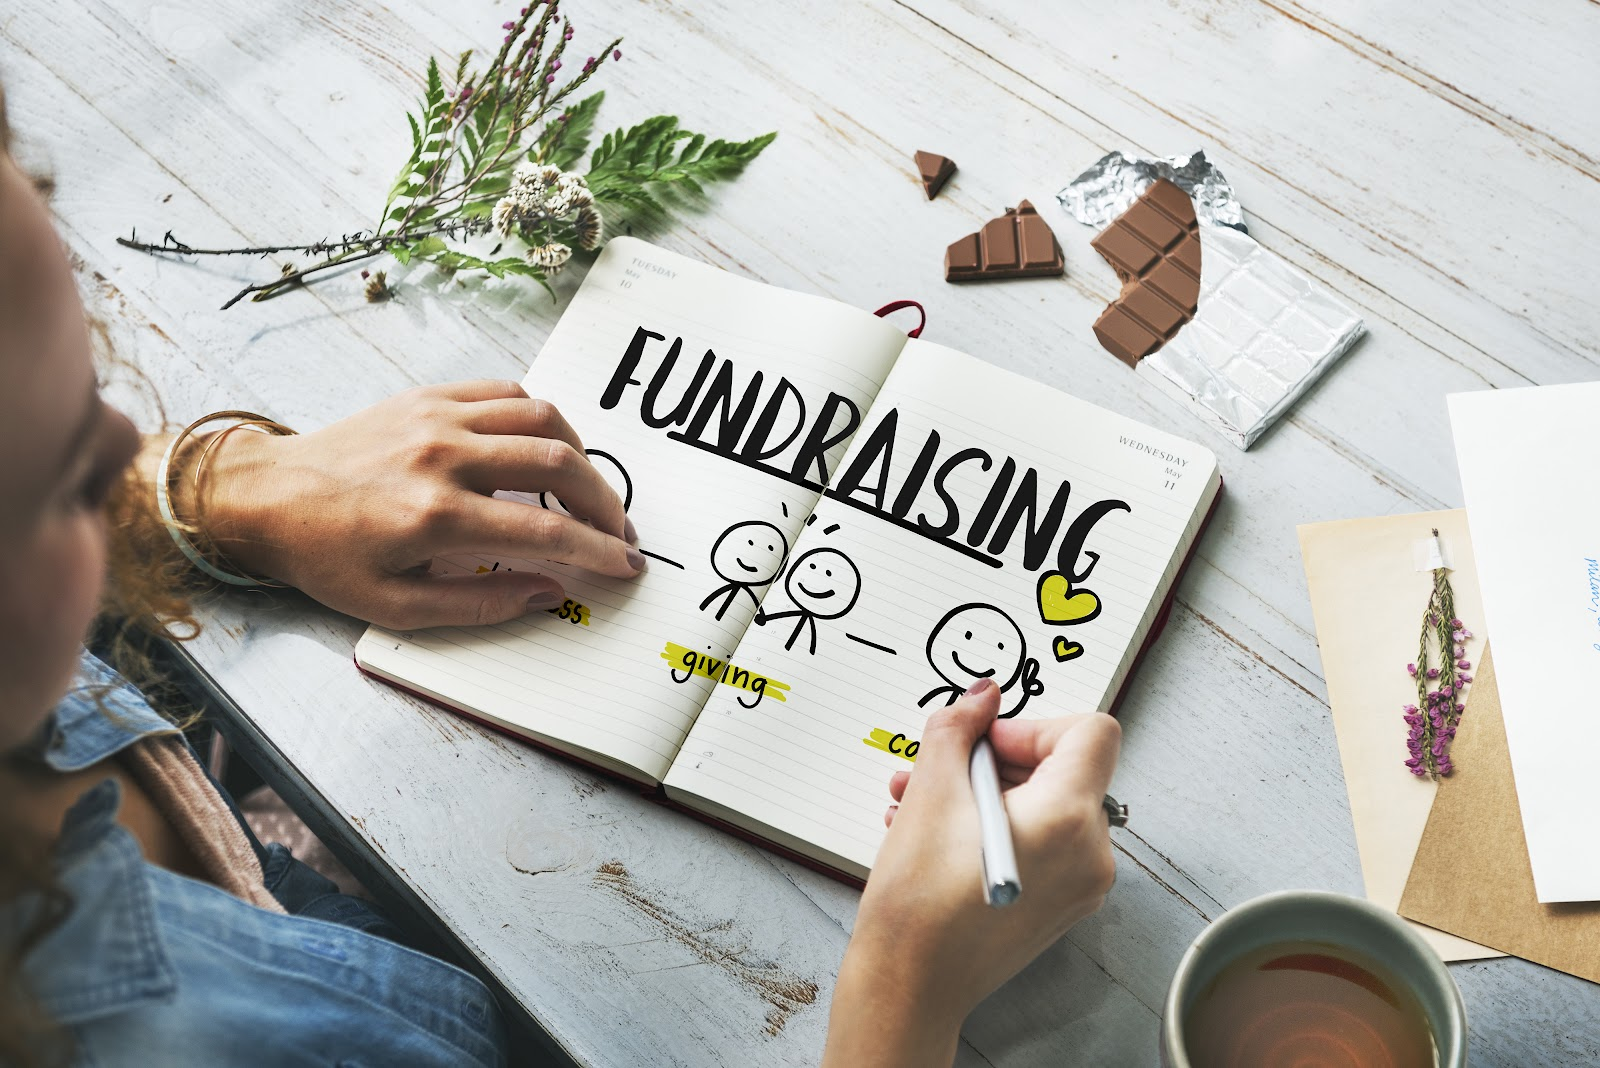 nonprofit fundraising: woman drawing about fundraising